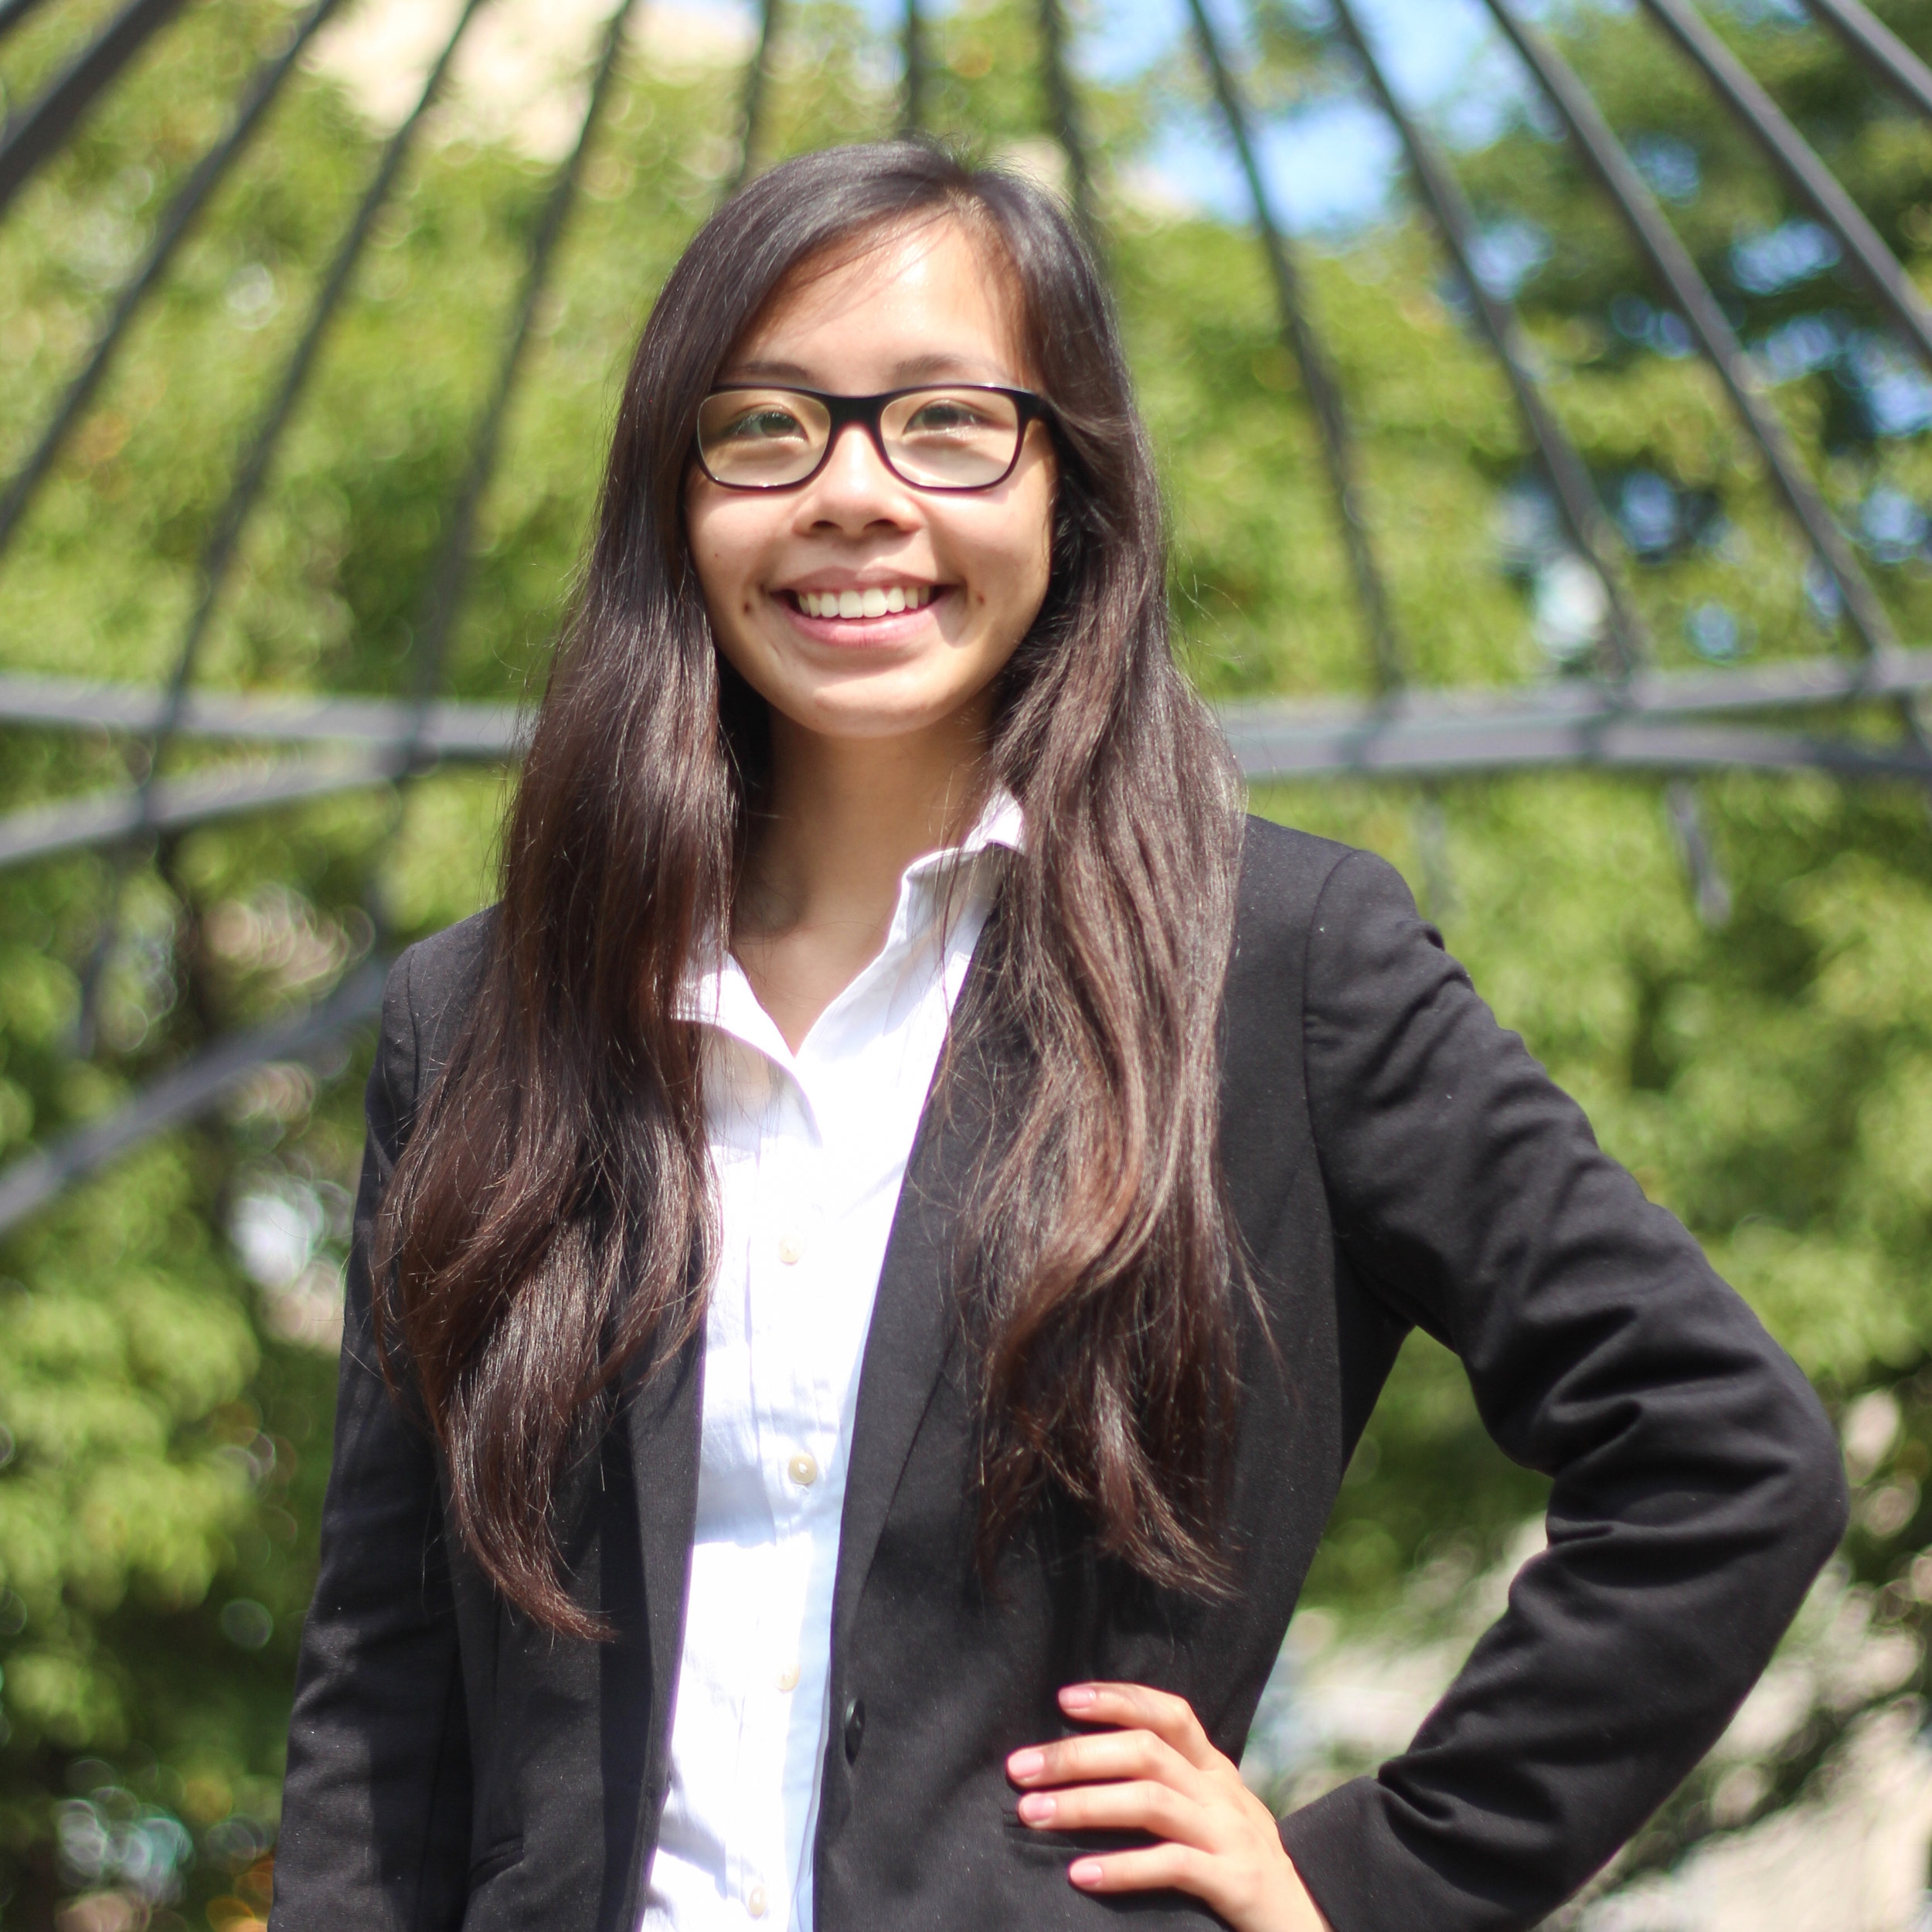 Crystal Hoang - Executive Assistant  3rd year, majoring in Economics and Management Science